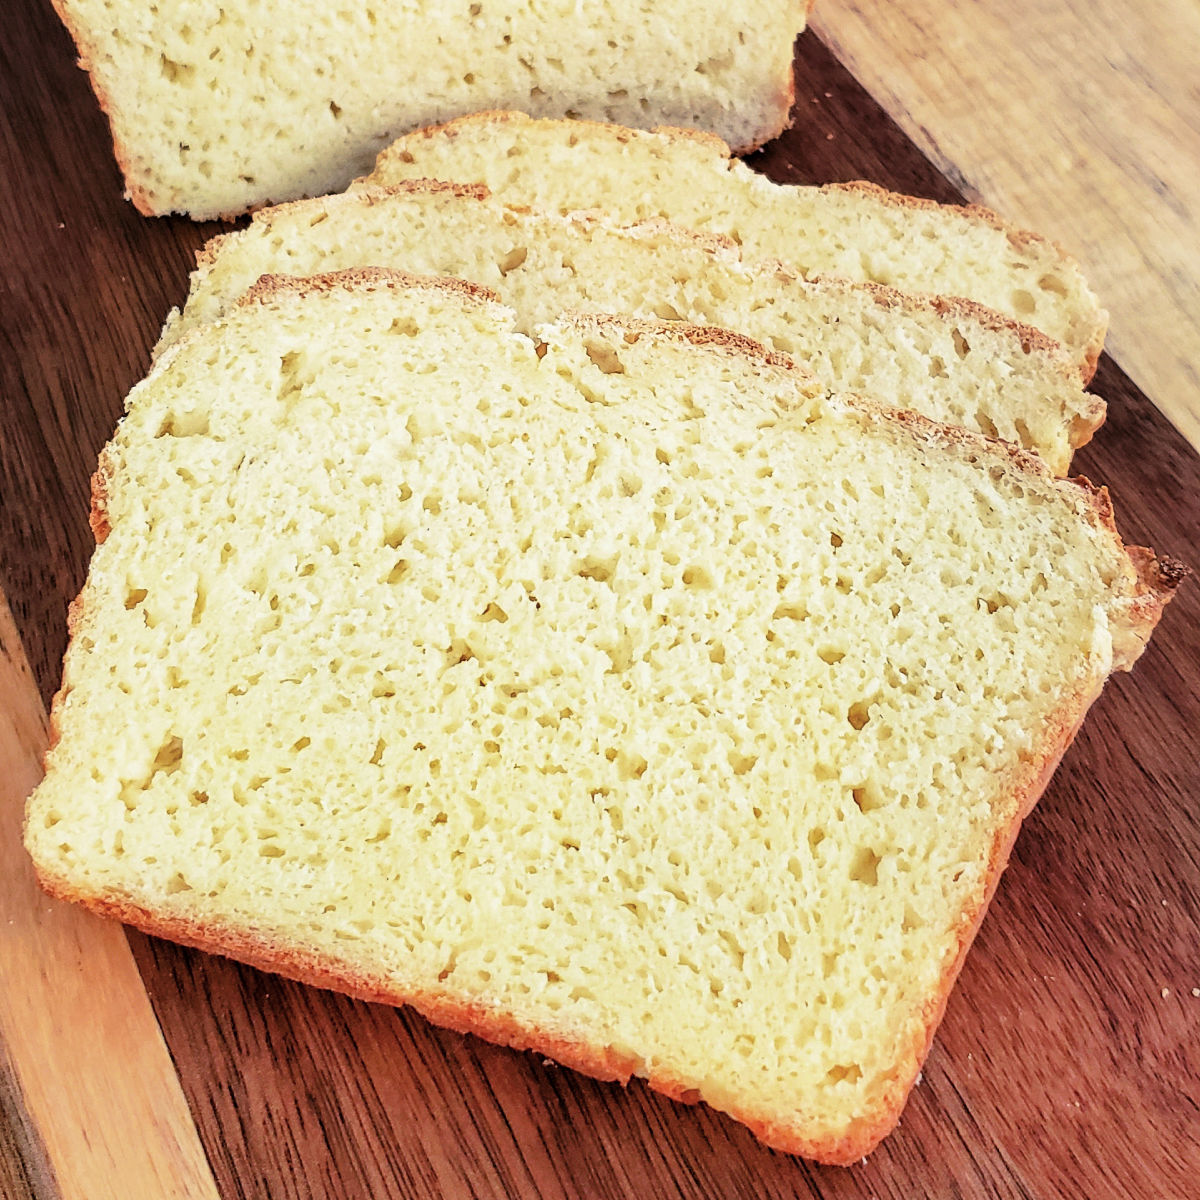 3 slices of homemade gluten free bread on cutting board.